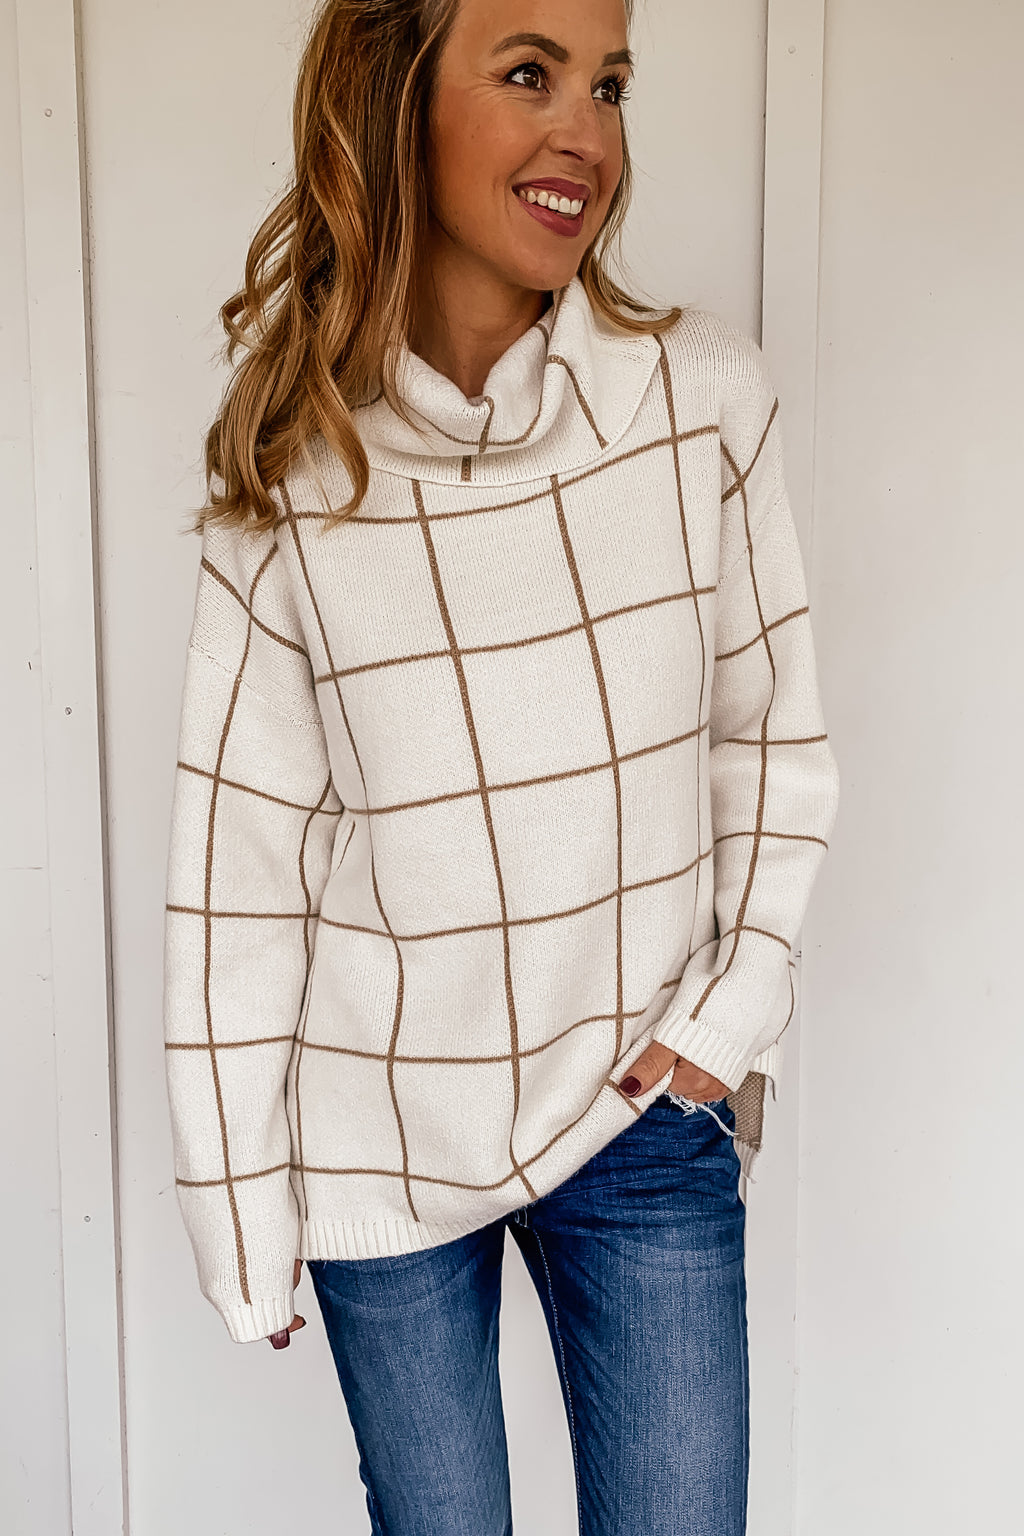 Checkered Turtleneck in Cream